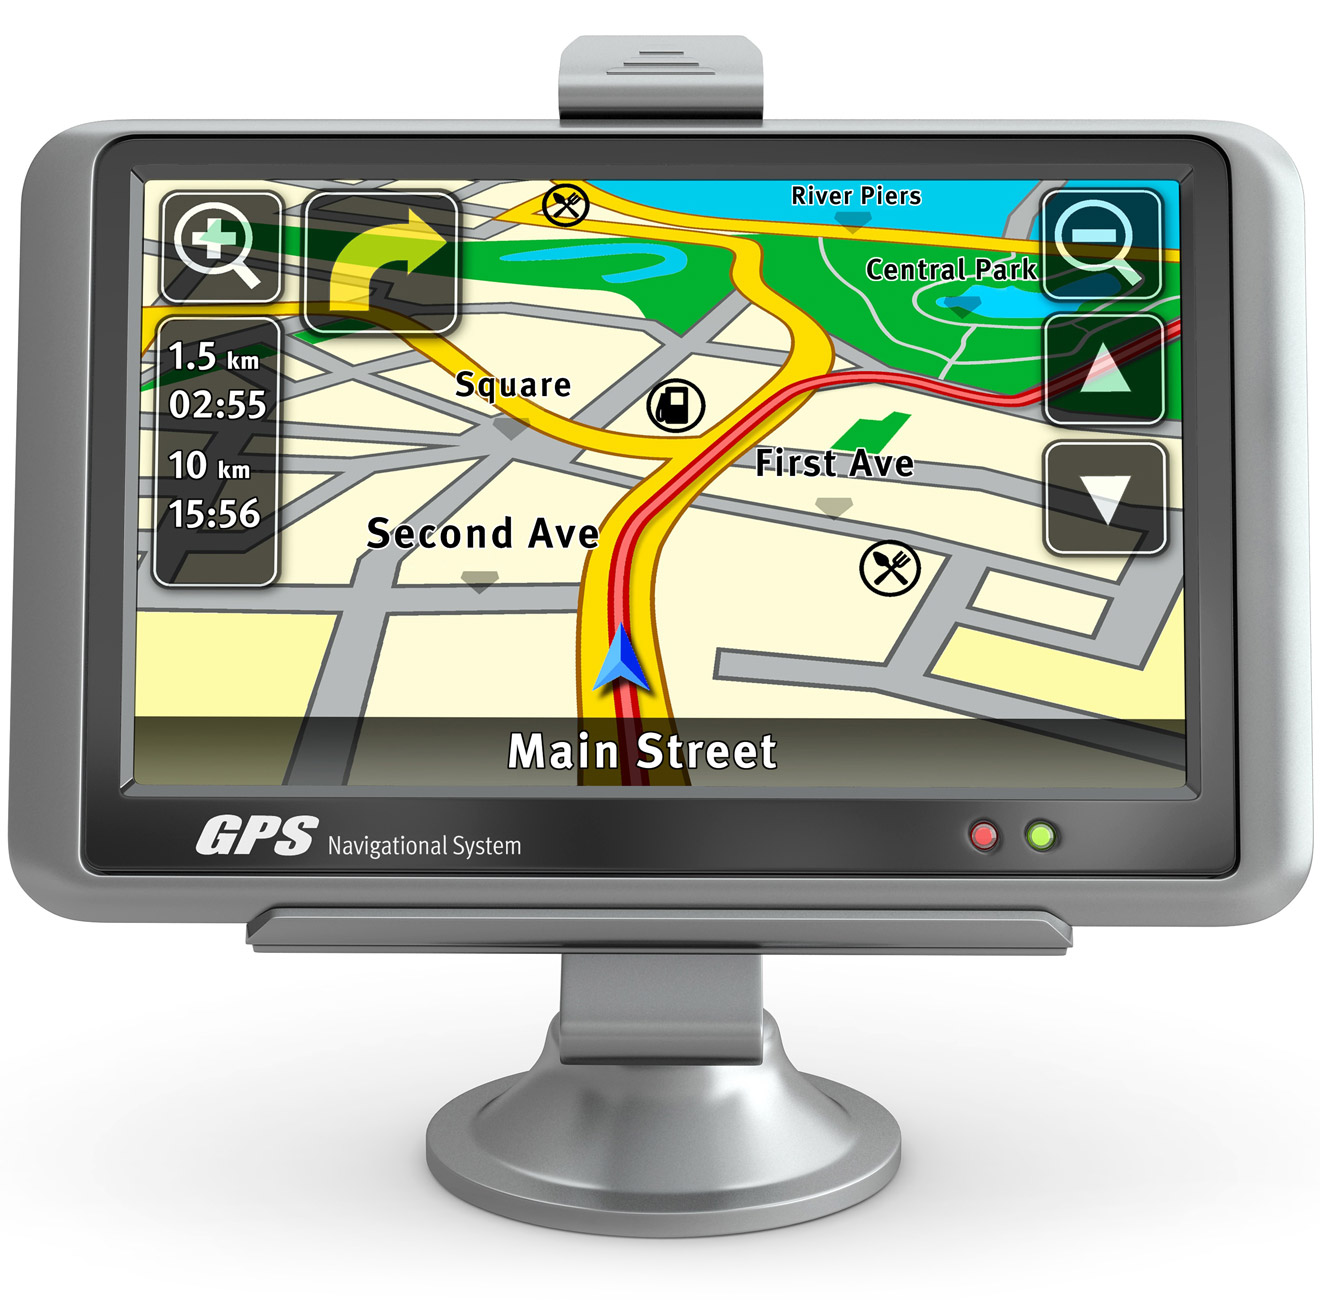 Fictional use case of FF Meta in an automotive navigation system.